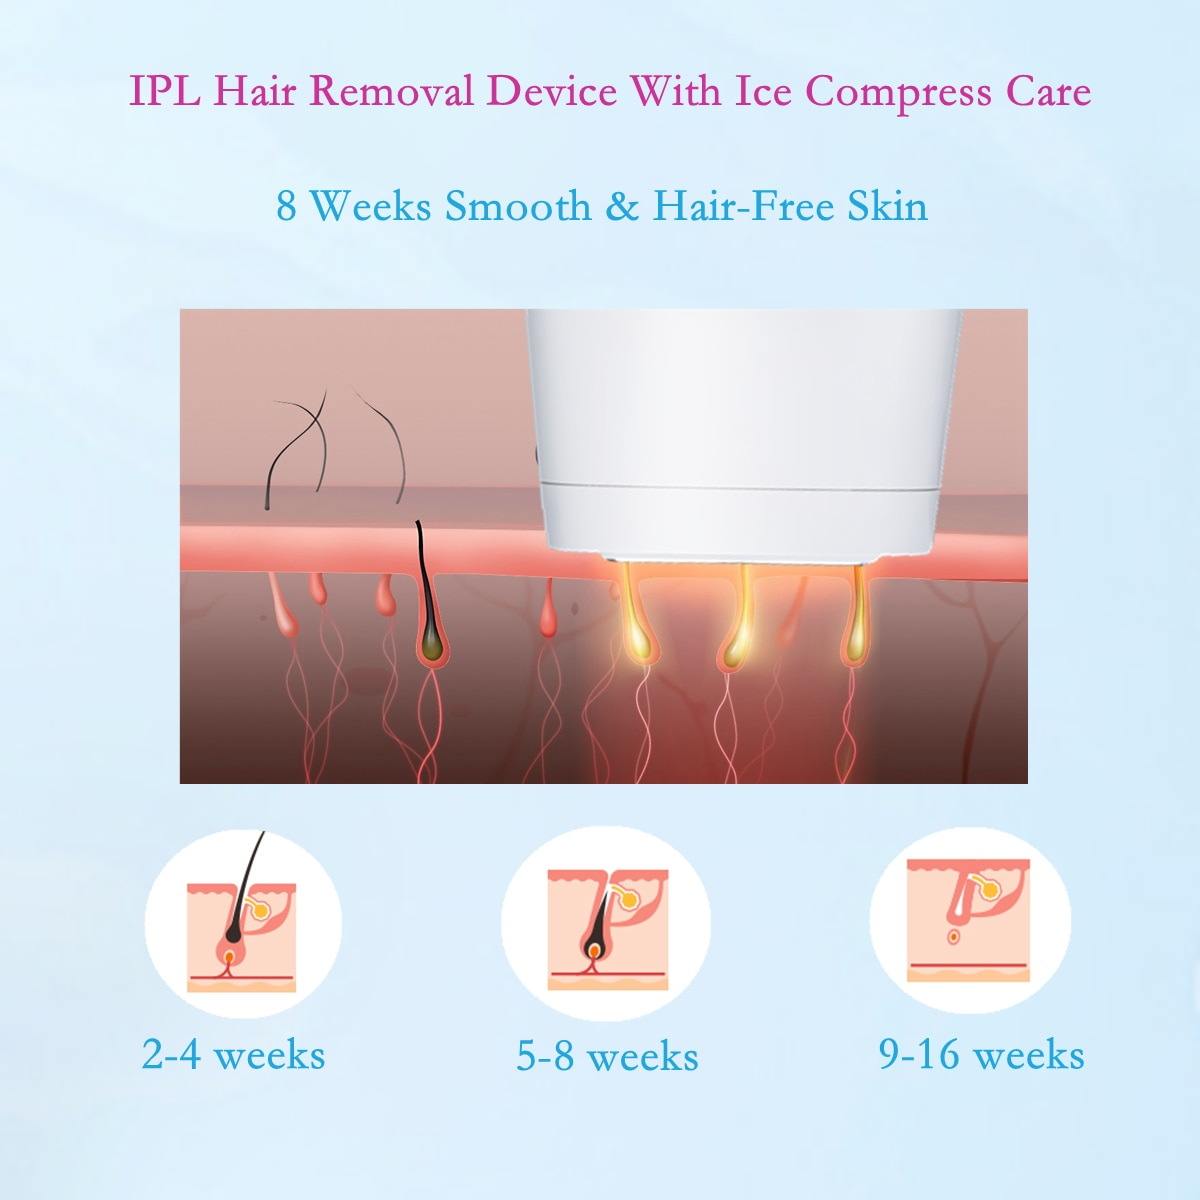 TUMAKOU 500000 Flashes IPL Epilator Permanent Laser Hair Removal Machine Face Body Electric Depilador Device for  Women and Men enlarge